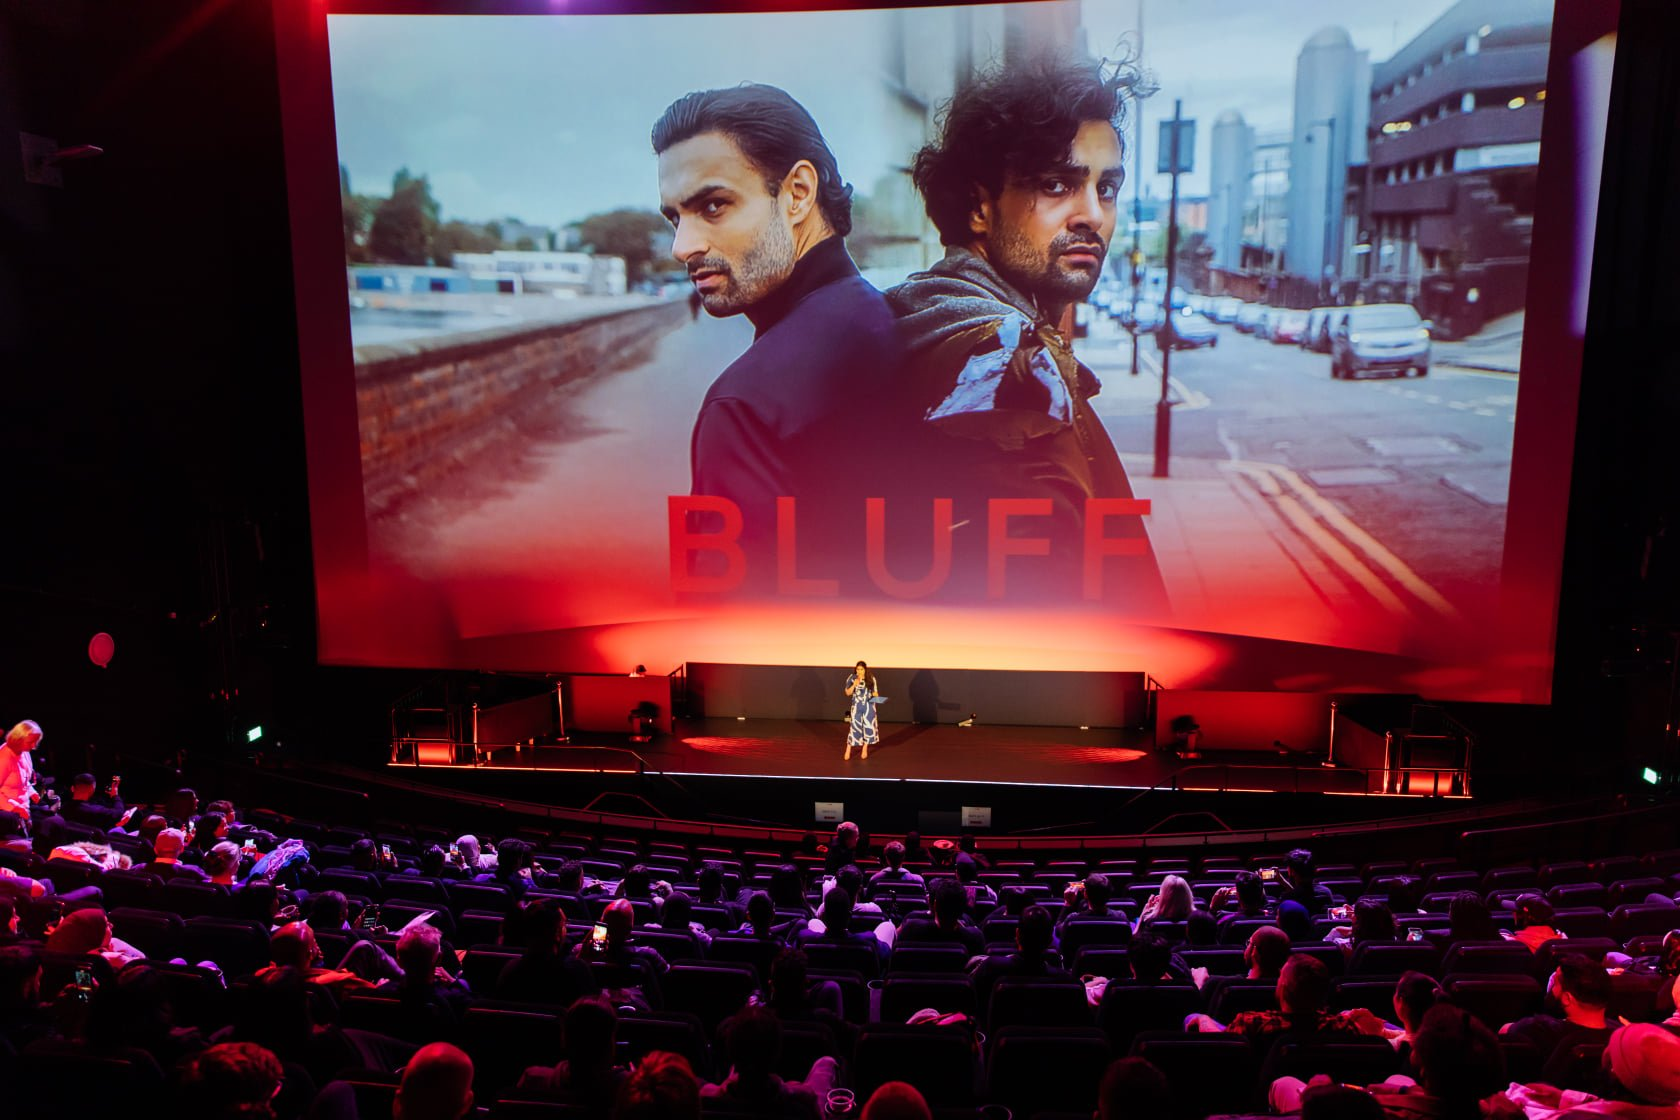 The truth will get you killed – Birmingham filmmaker's crime thriller shown on the big screen